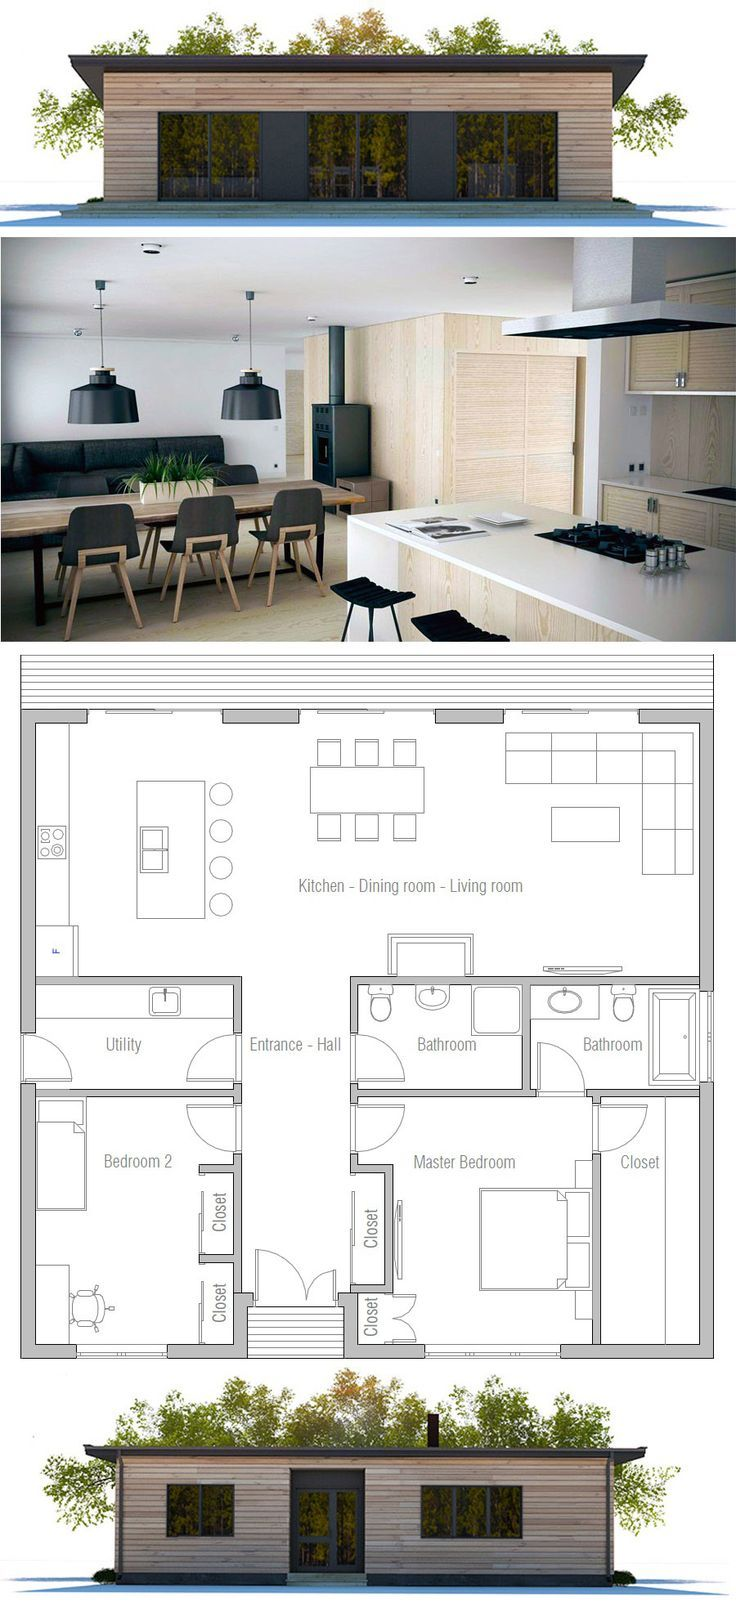 Small House Plans Smallhouseplans Small House Plans Two Bedroom House Courtyard House Plans